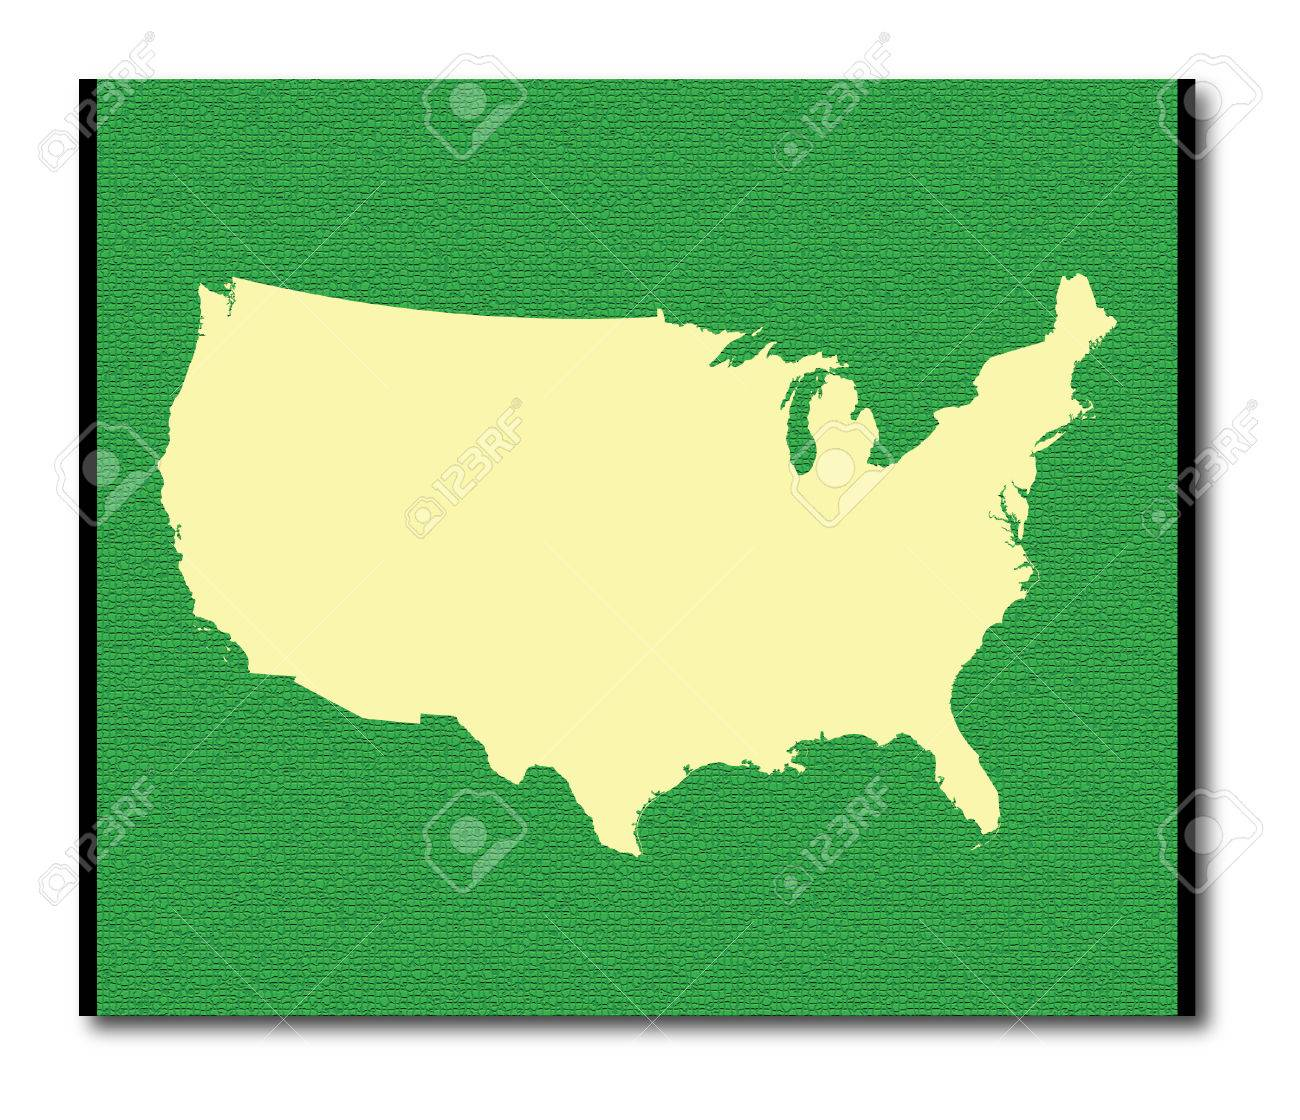 United States map outline in green color on virginia united states map, cancer statistics 2013 united states map, united states graphic map, united states economy map, product of the usa, united states agriculture map,